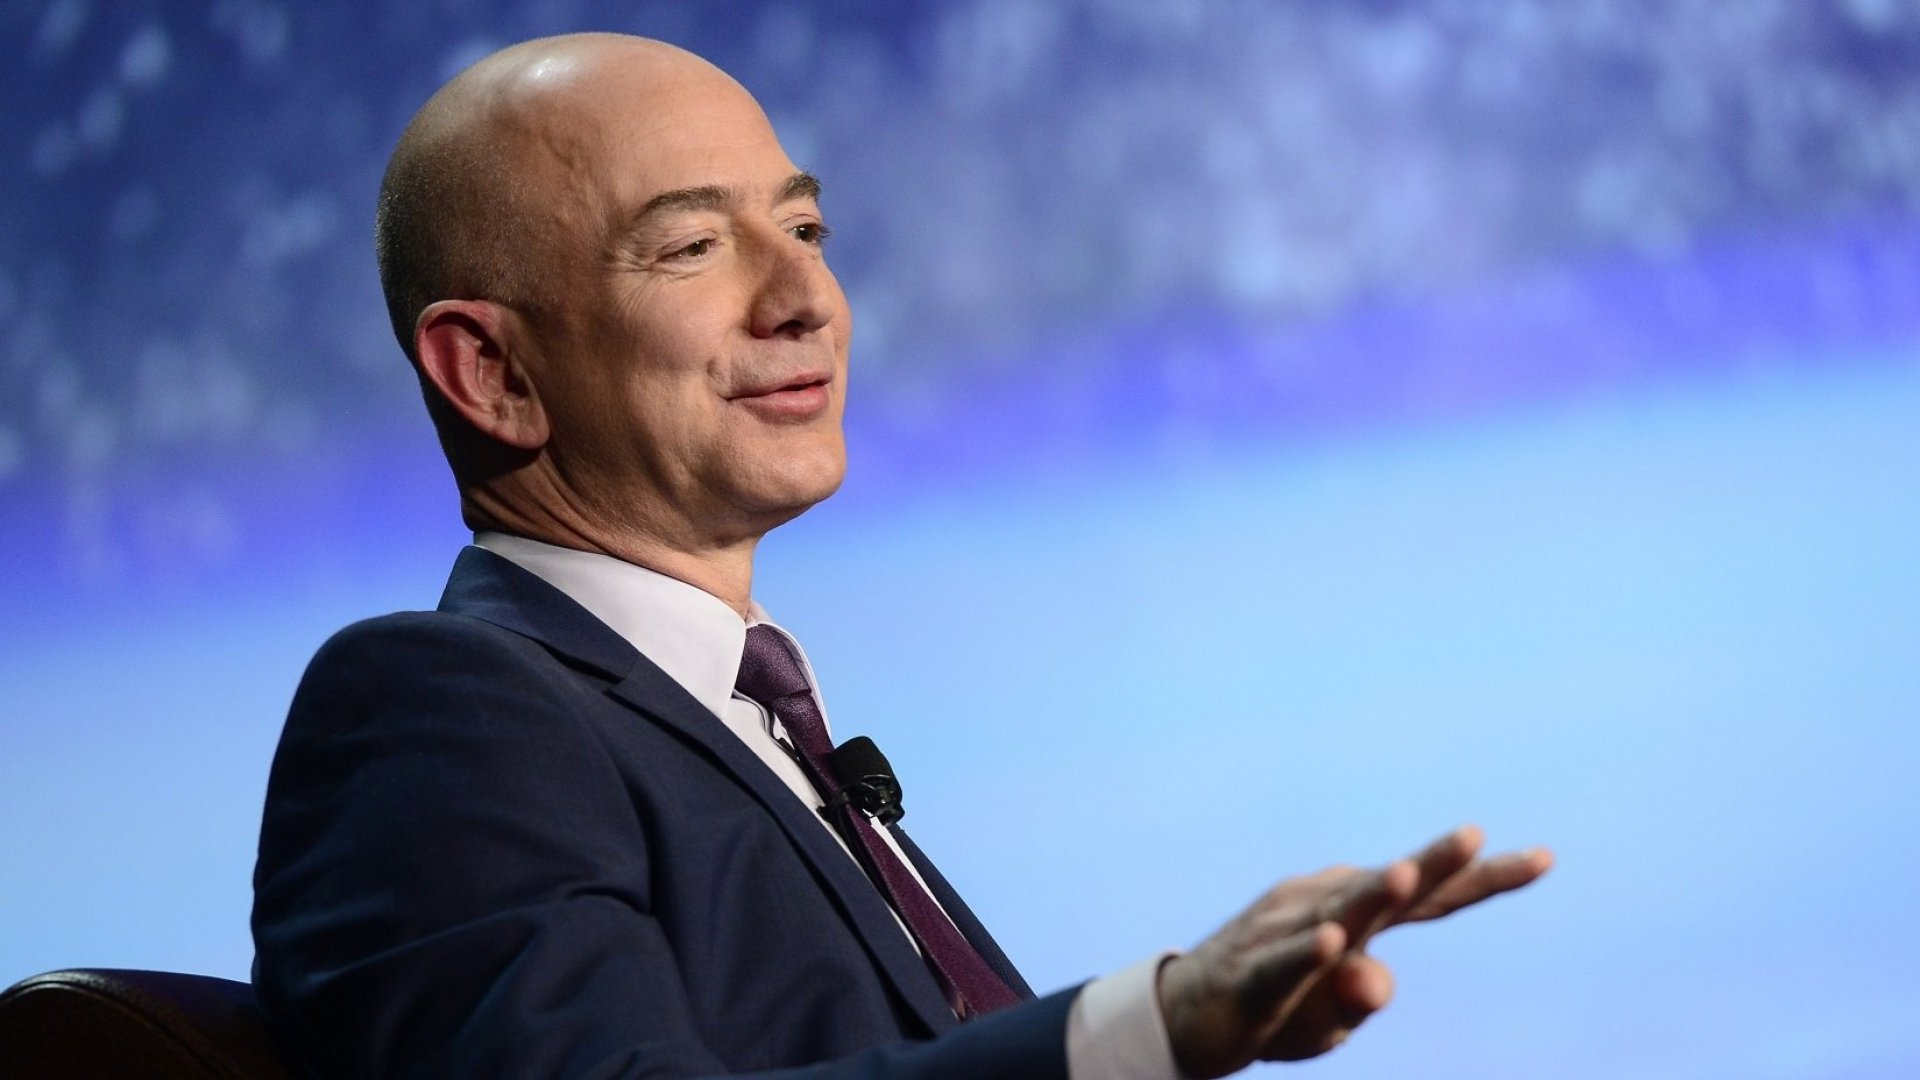 How to Respond When Your Reputation Is Attacked, Courtesy of Jeff Bezos